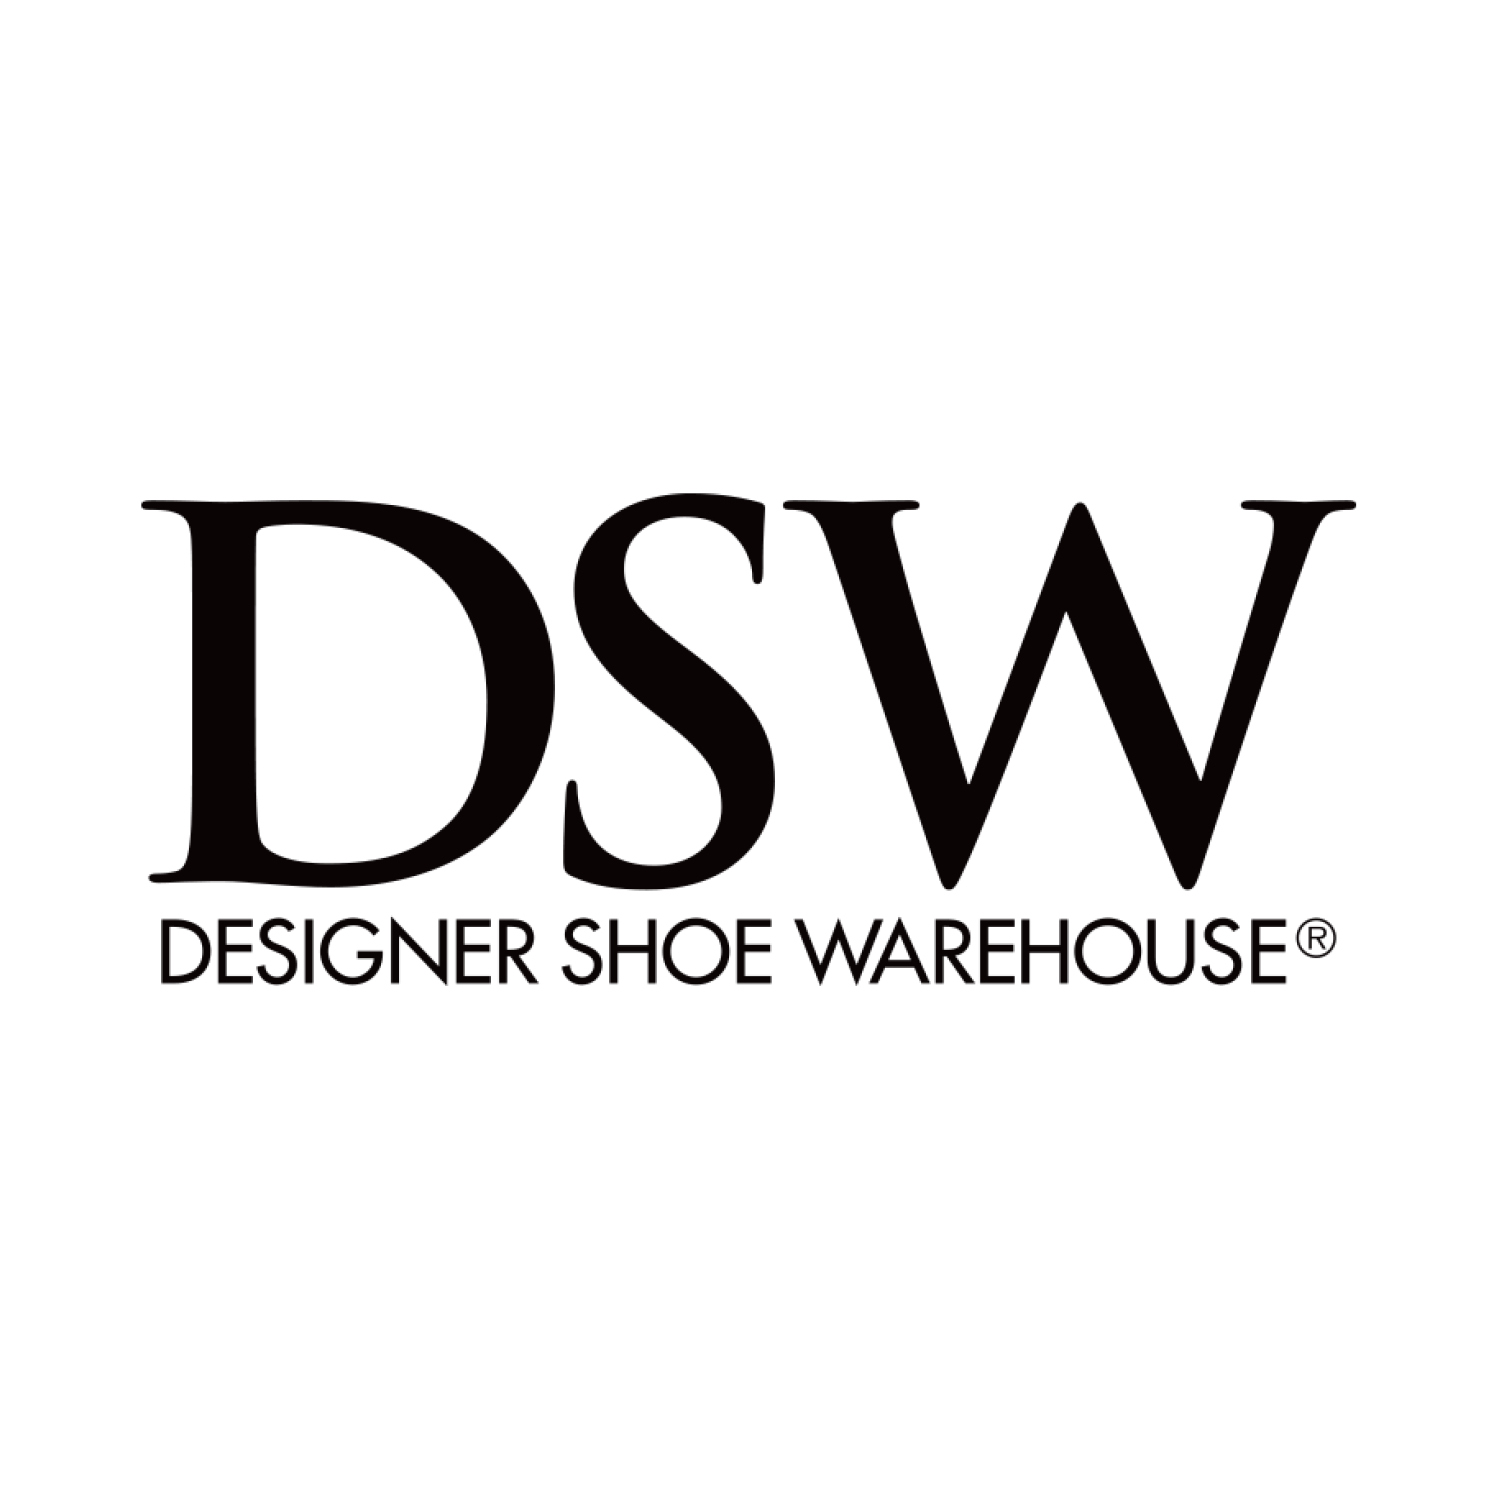 DSW Feature Table - Price Points: $29.99 - FR